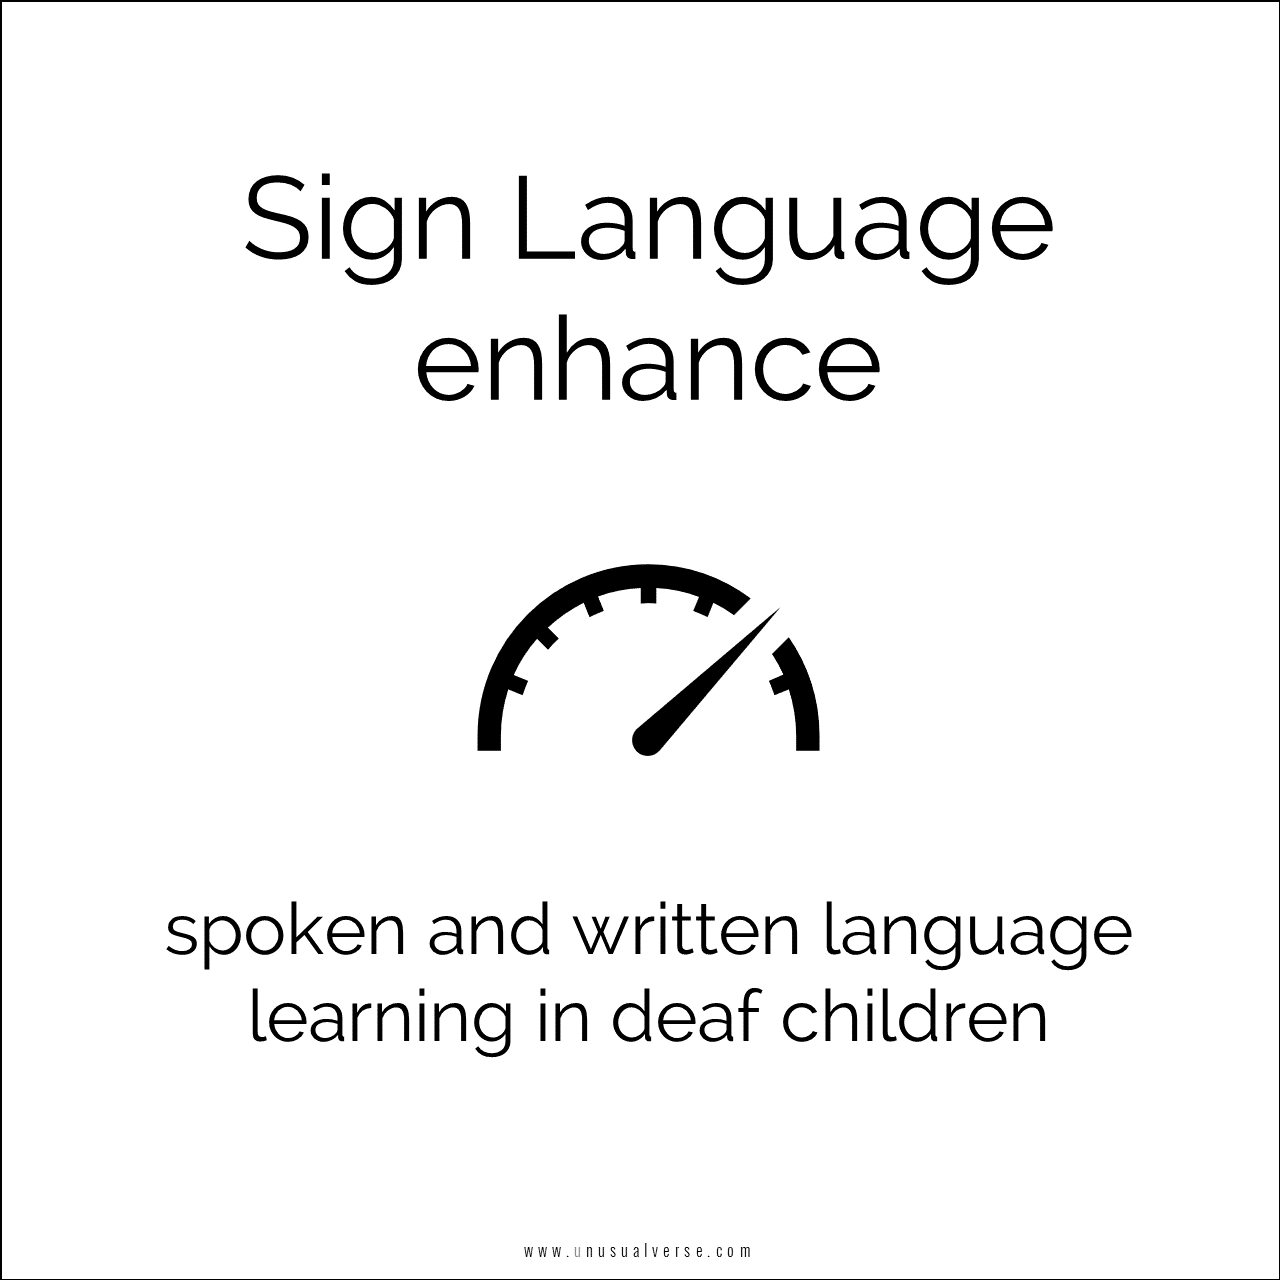 Sign Language enhance spoken and written language learning in deaf children